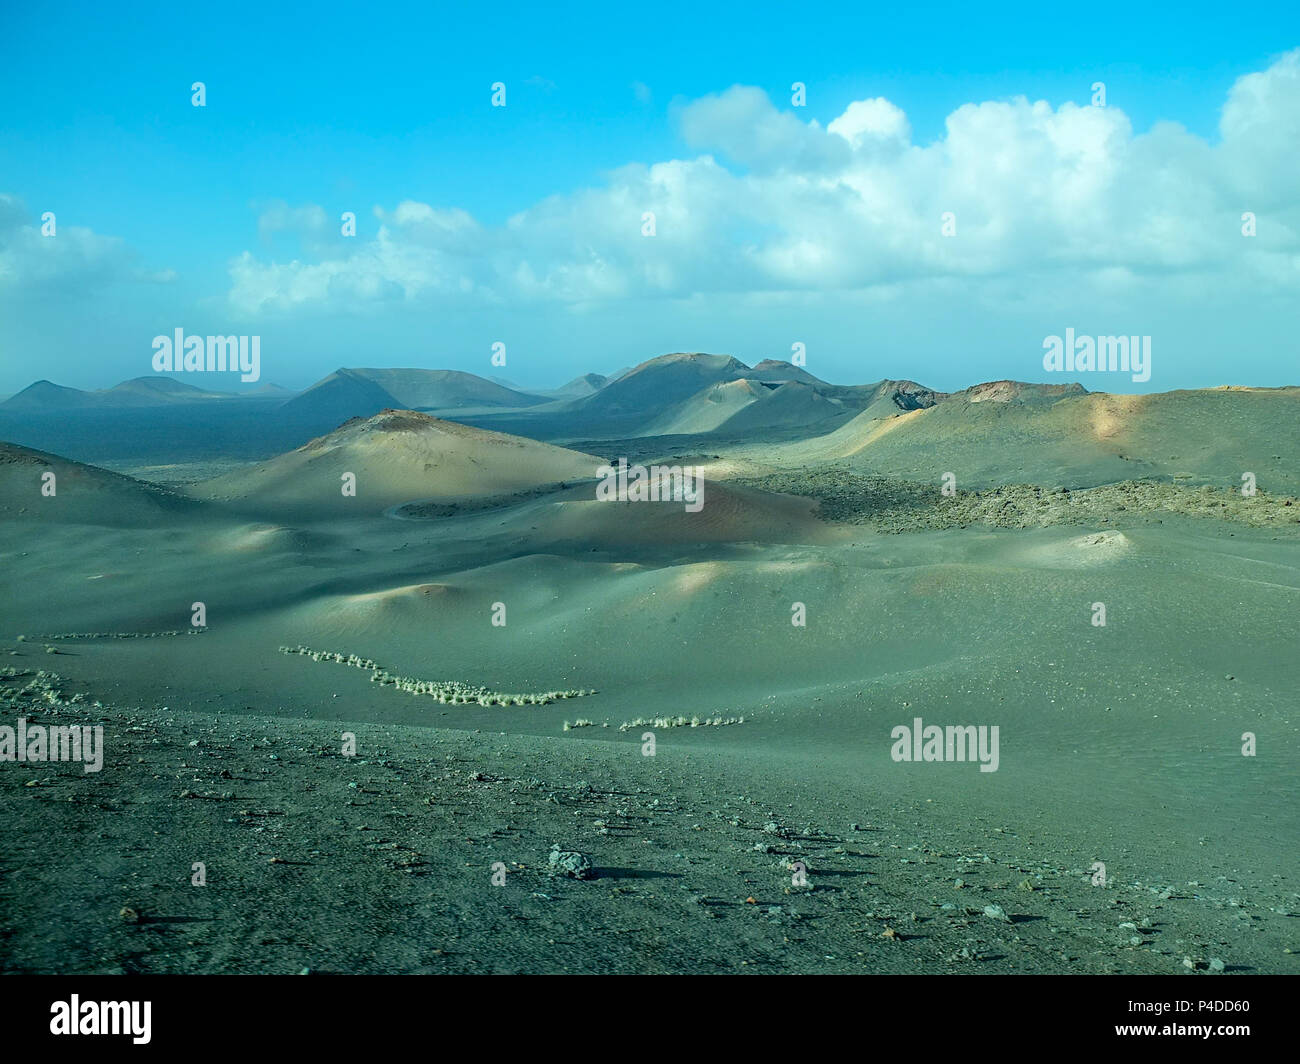 The volcanic landscapes of Lanzarote give a lunar feel and sometimes desolate depending on the time of day. The image was taken thriugh a heat haze an - Stock Image